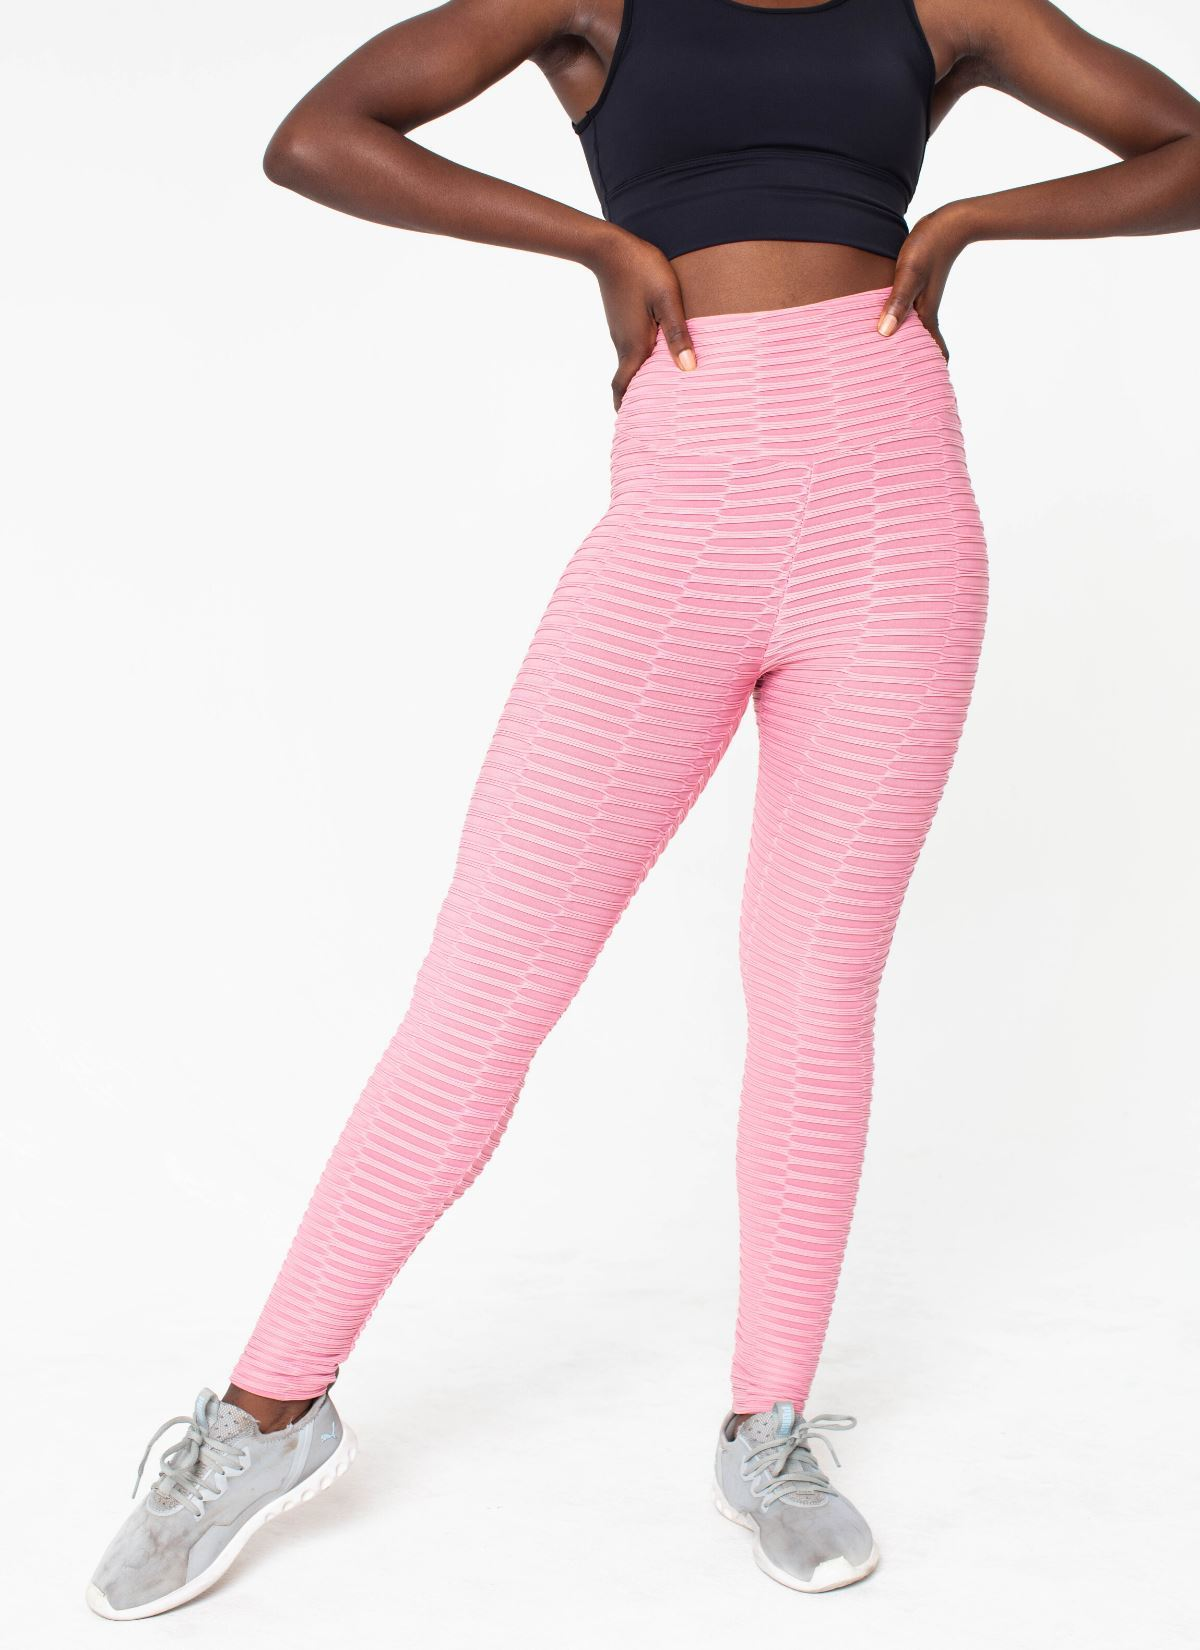 Shape Cellulite-Friendly Pink Seamless Leggings - Athlete Body